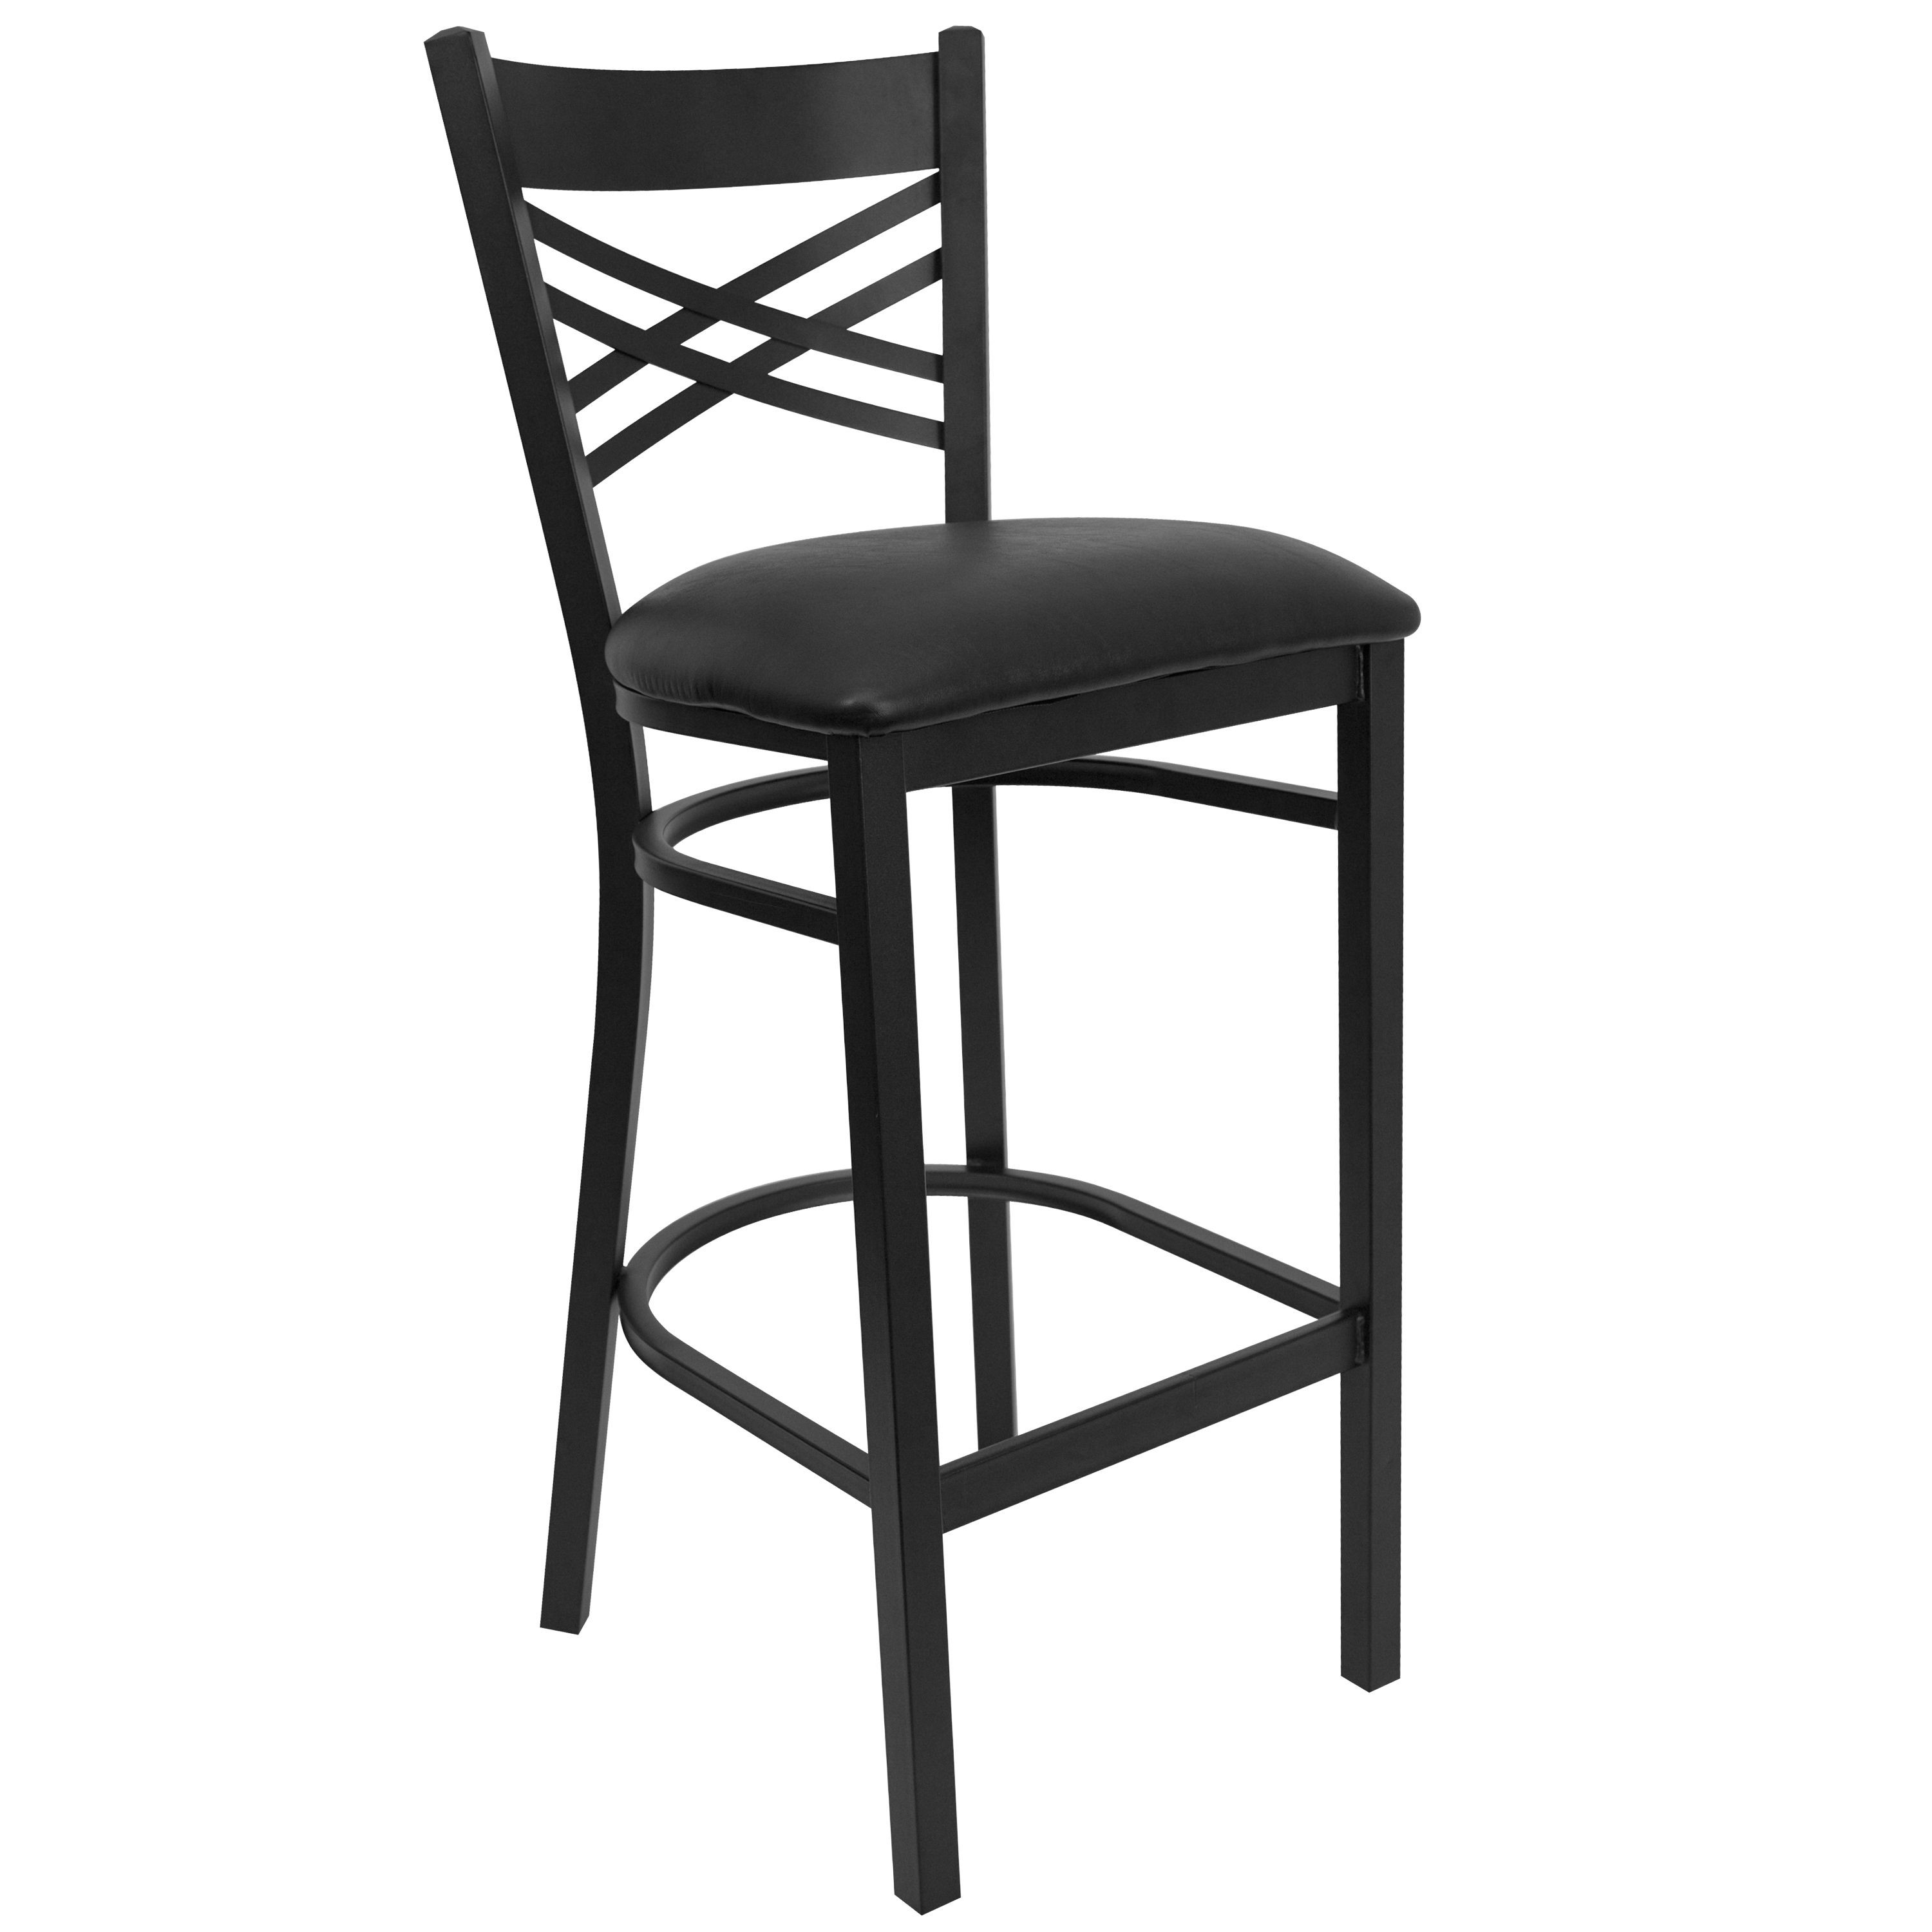 "Flash Furniture xu-6f8bxbk-bar-blkv-gg HERCULES Series Black ""X"" Back Metal Bar Stool with Black Vinyl Seat"